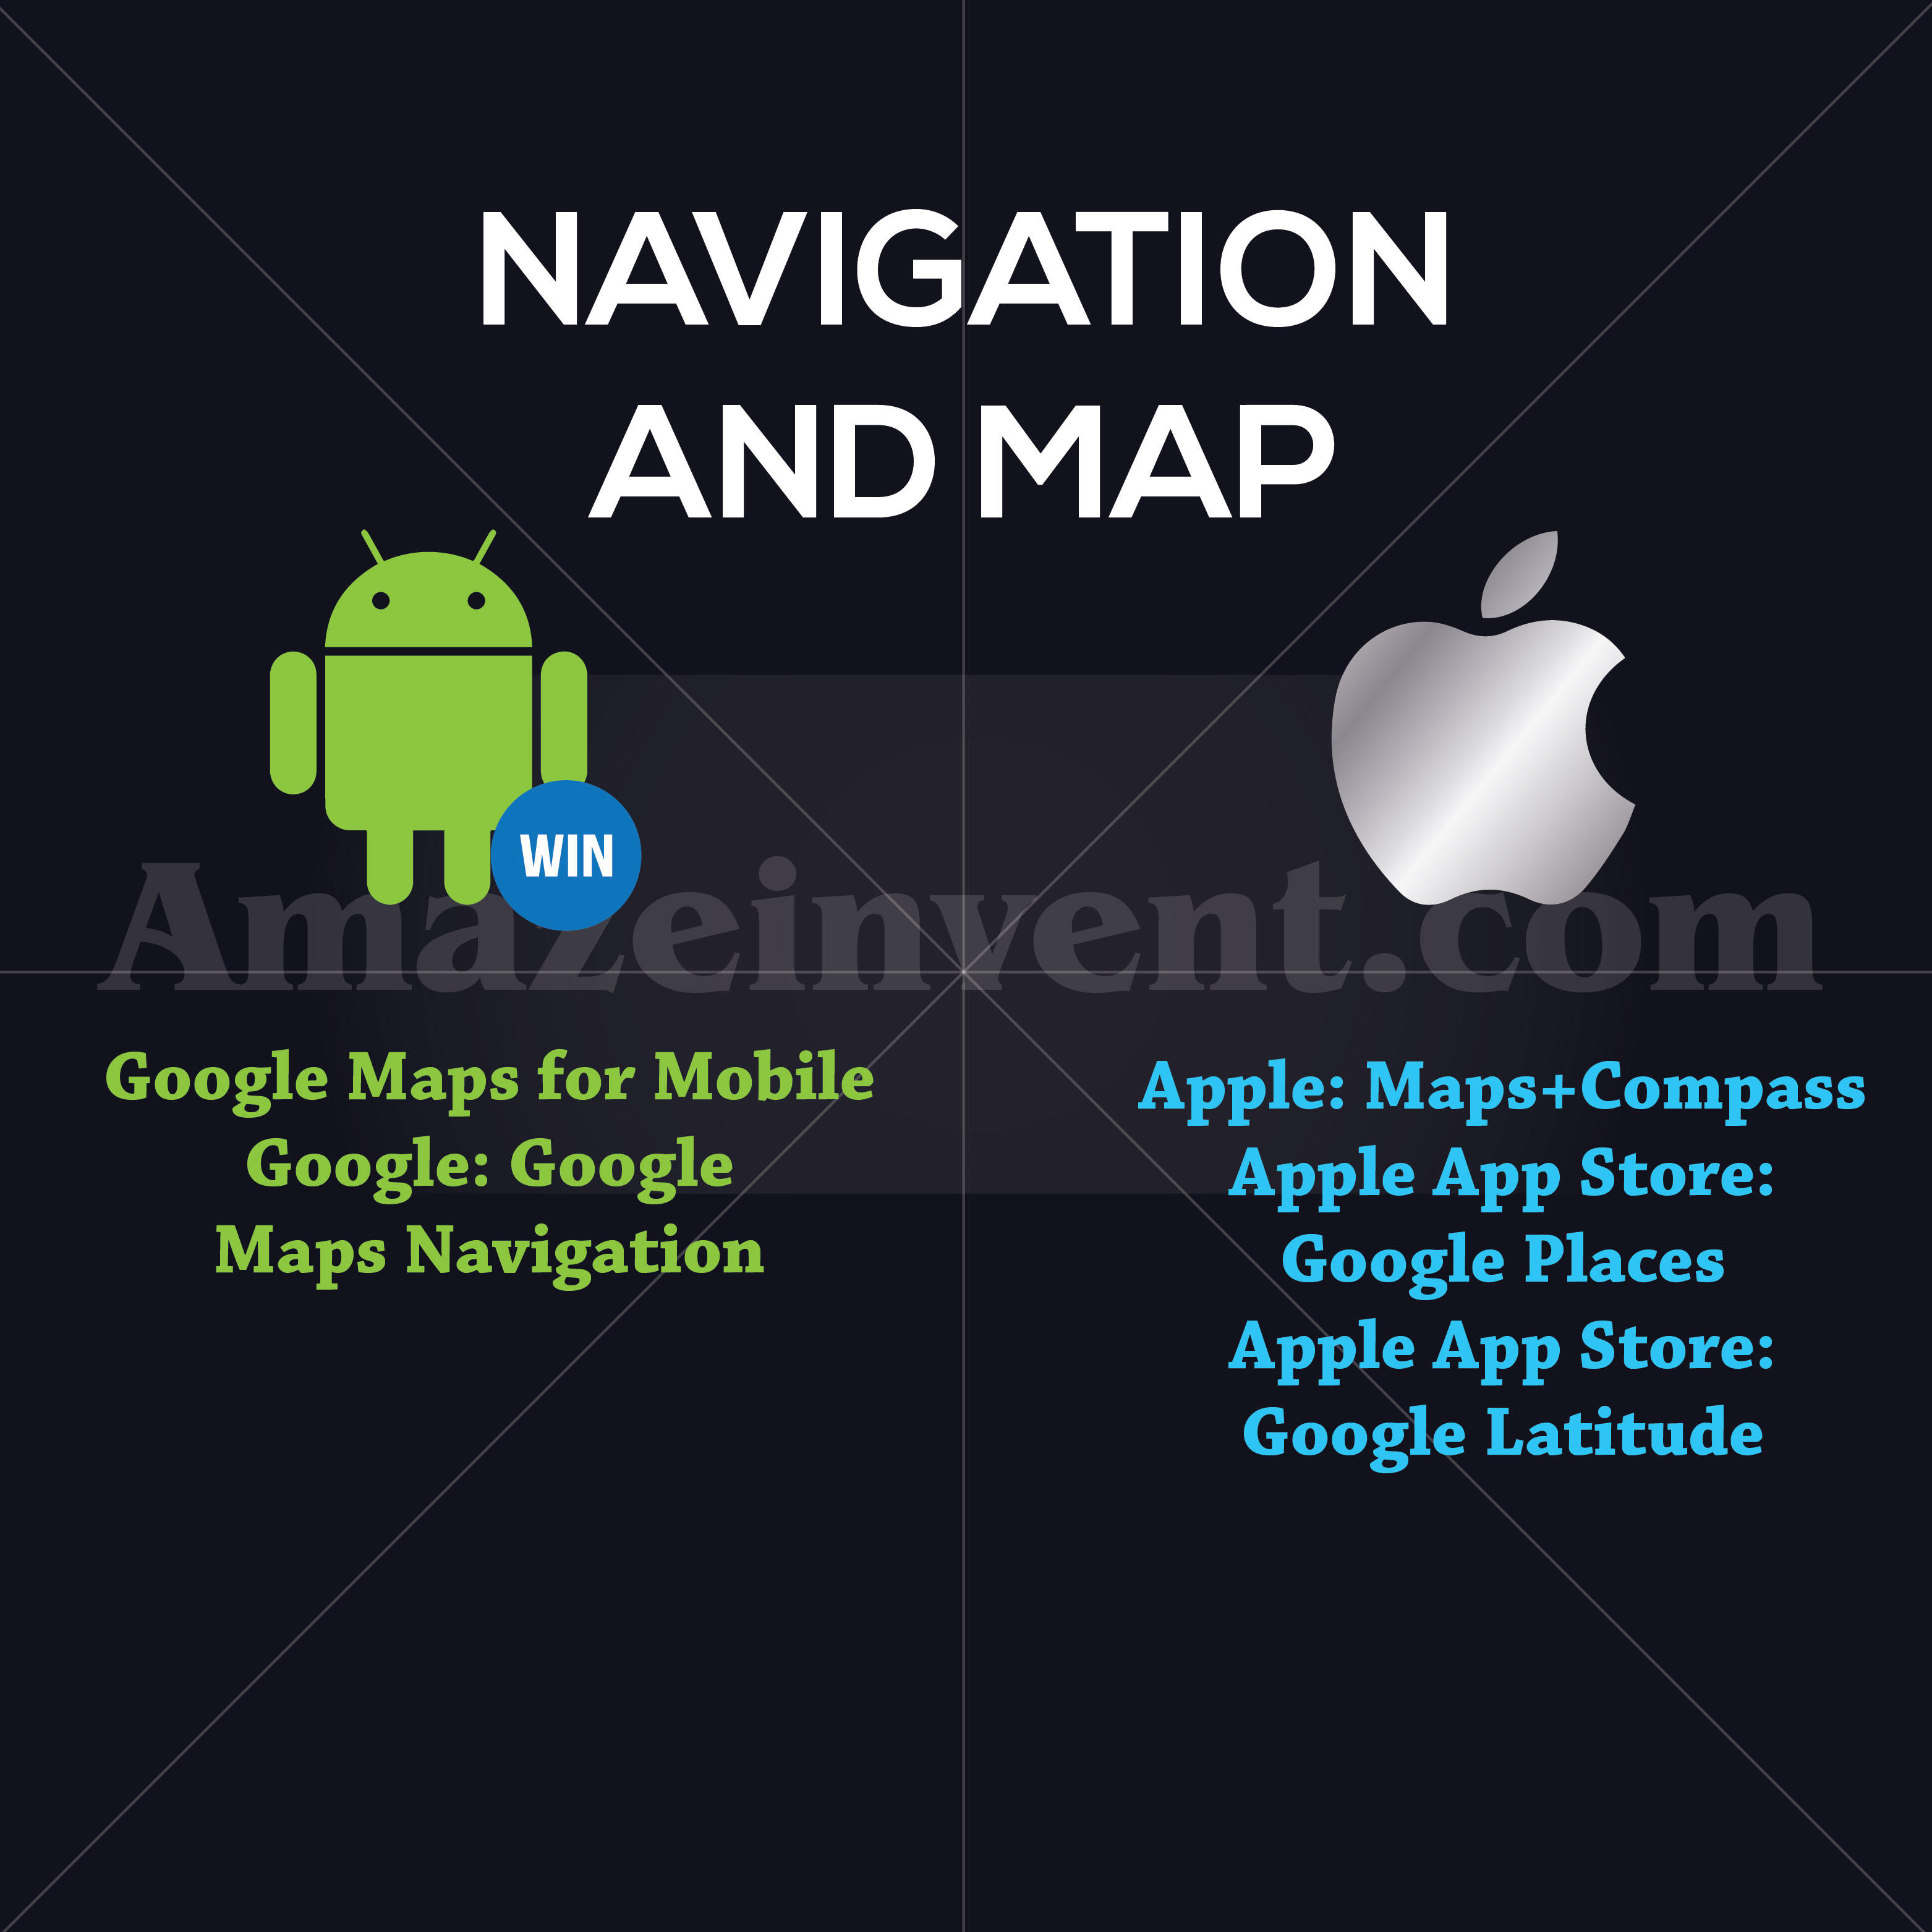 Android vs iOS navigation and map